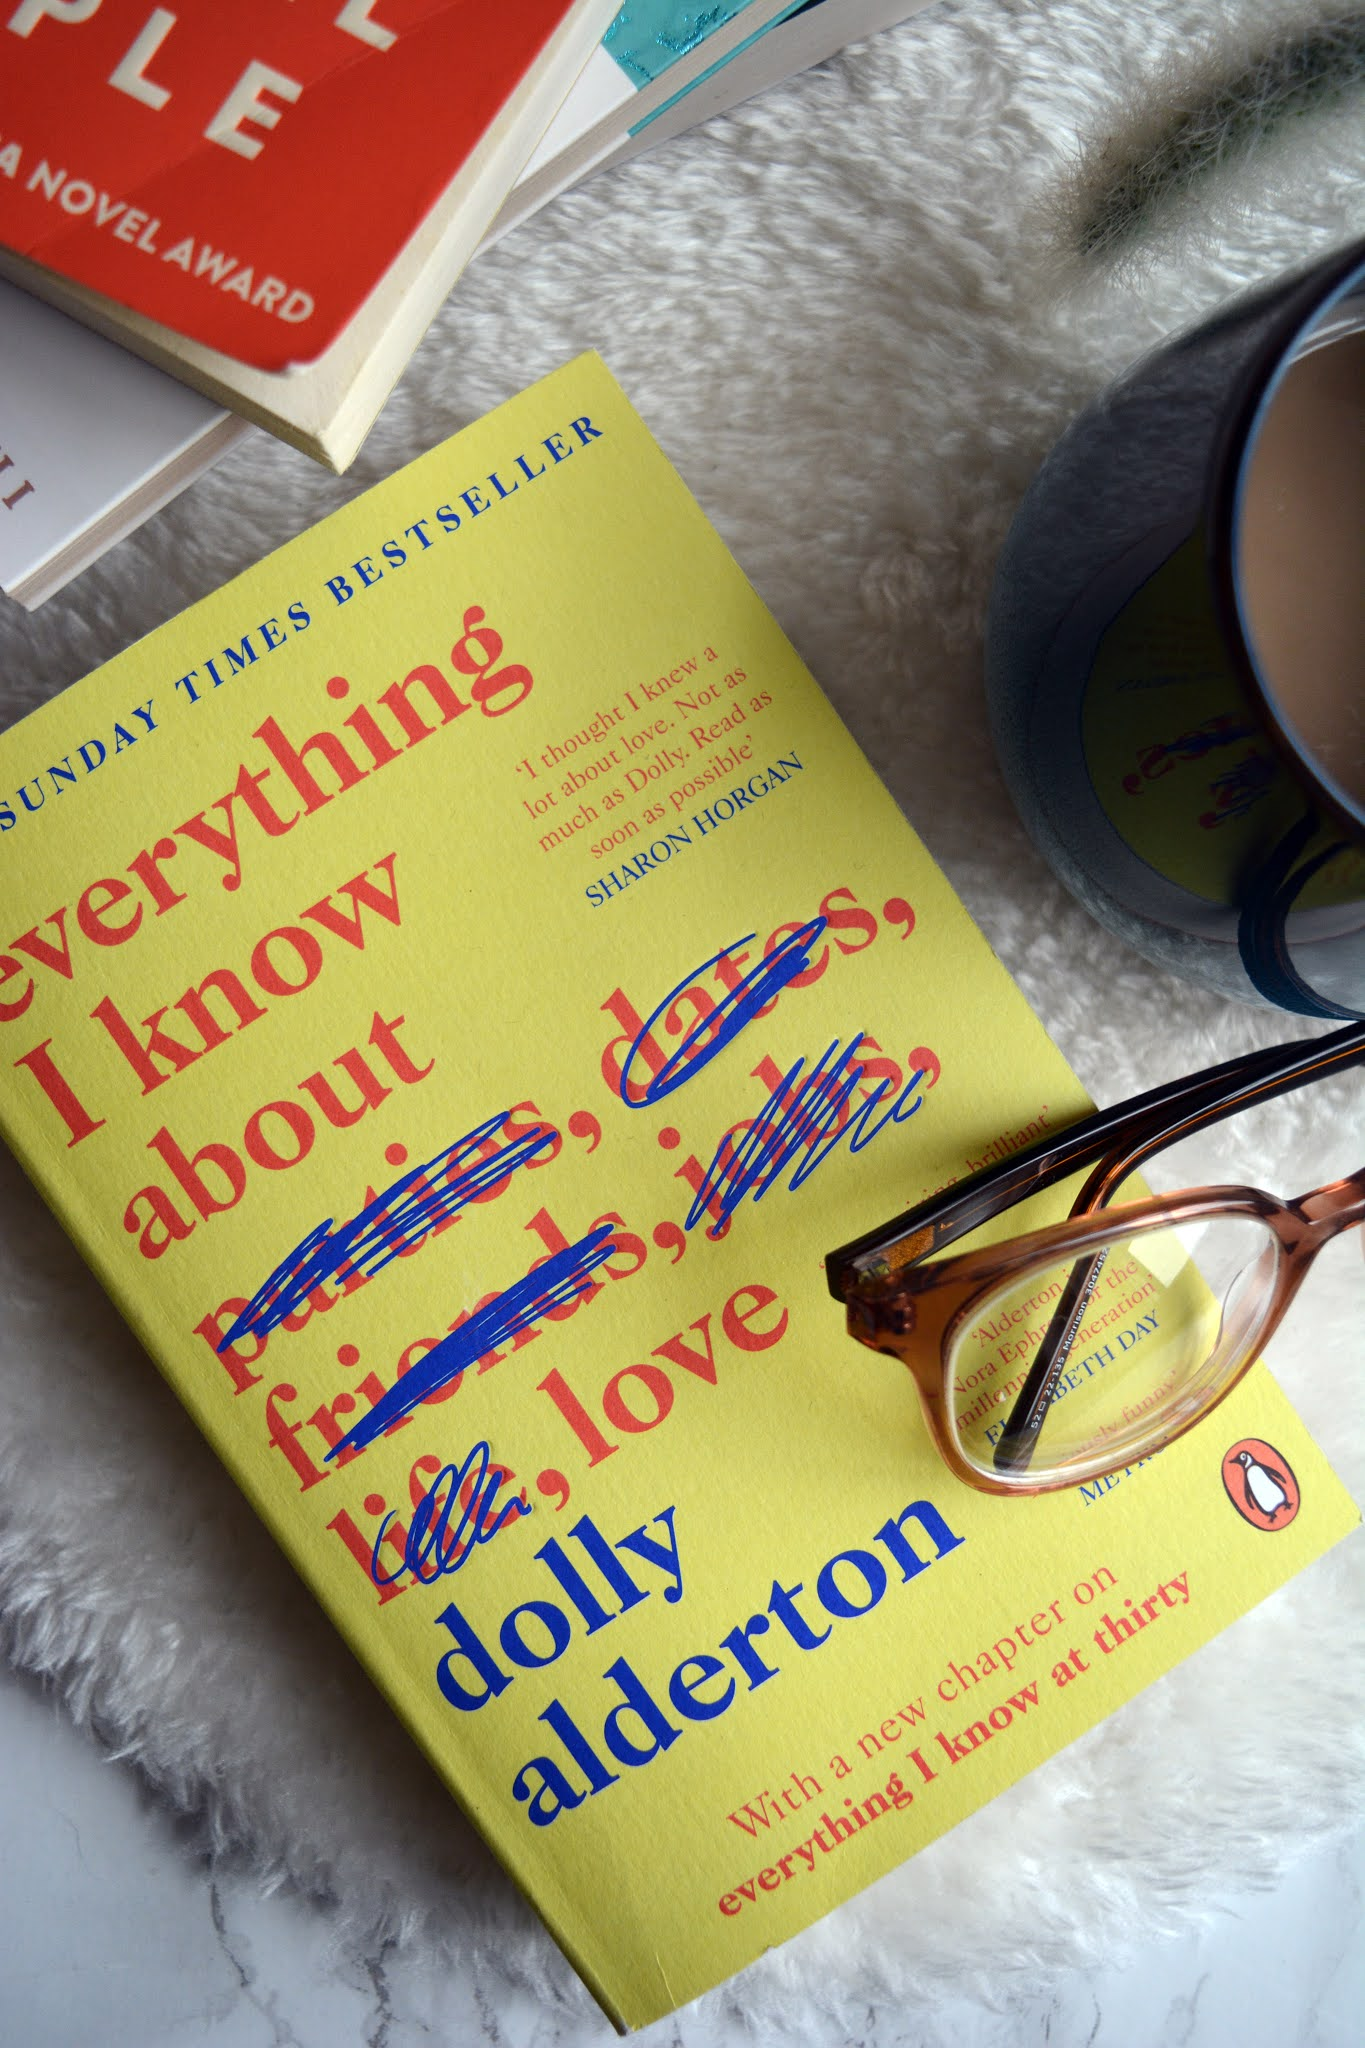 picture of dolly Alderton novel with yellow cover and red writing